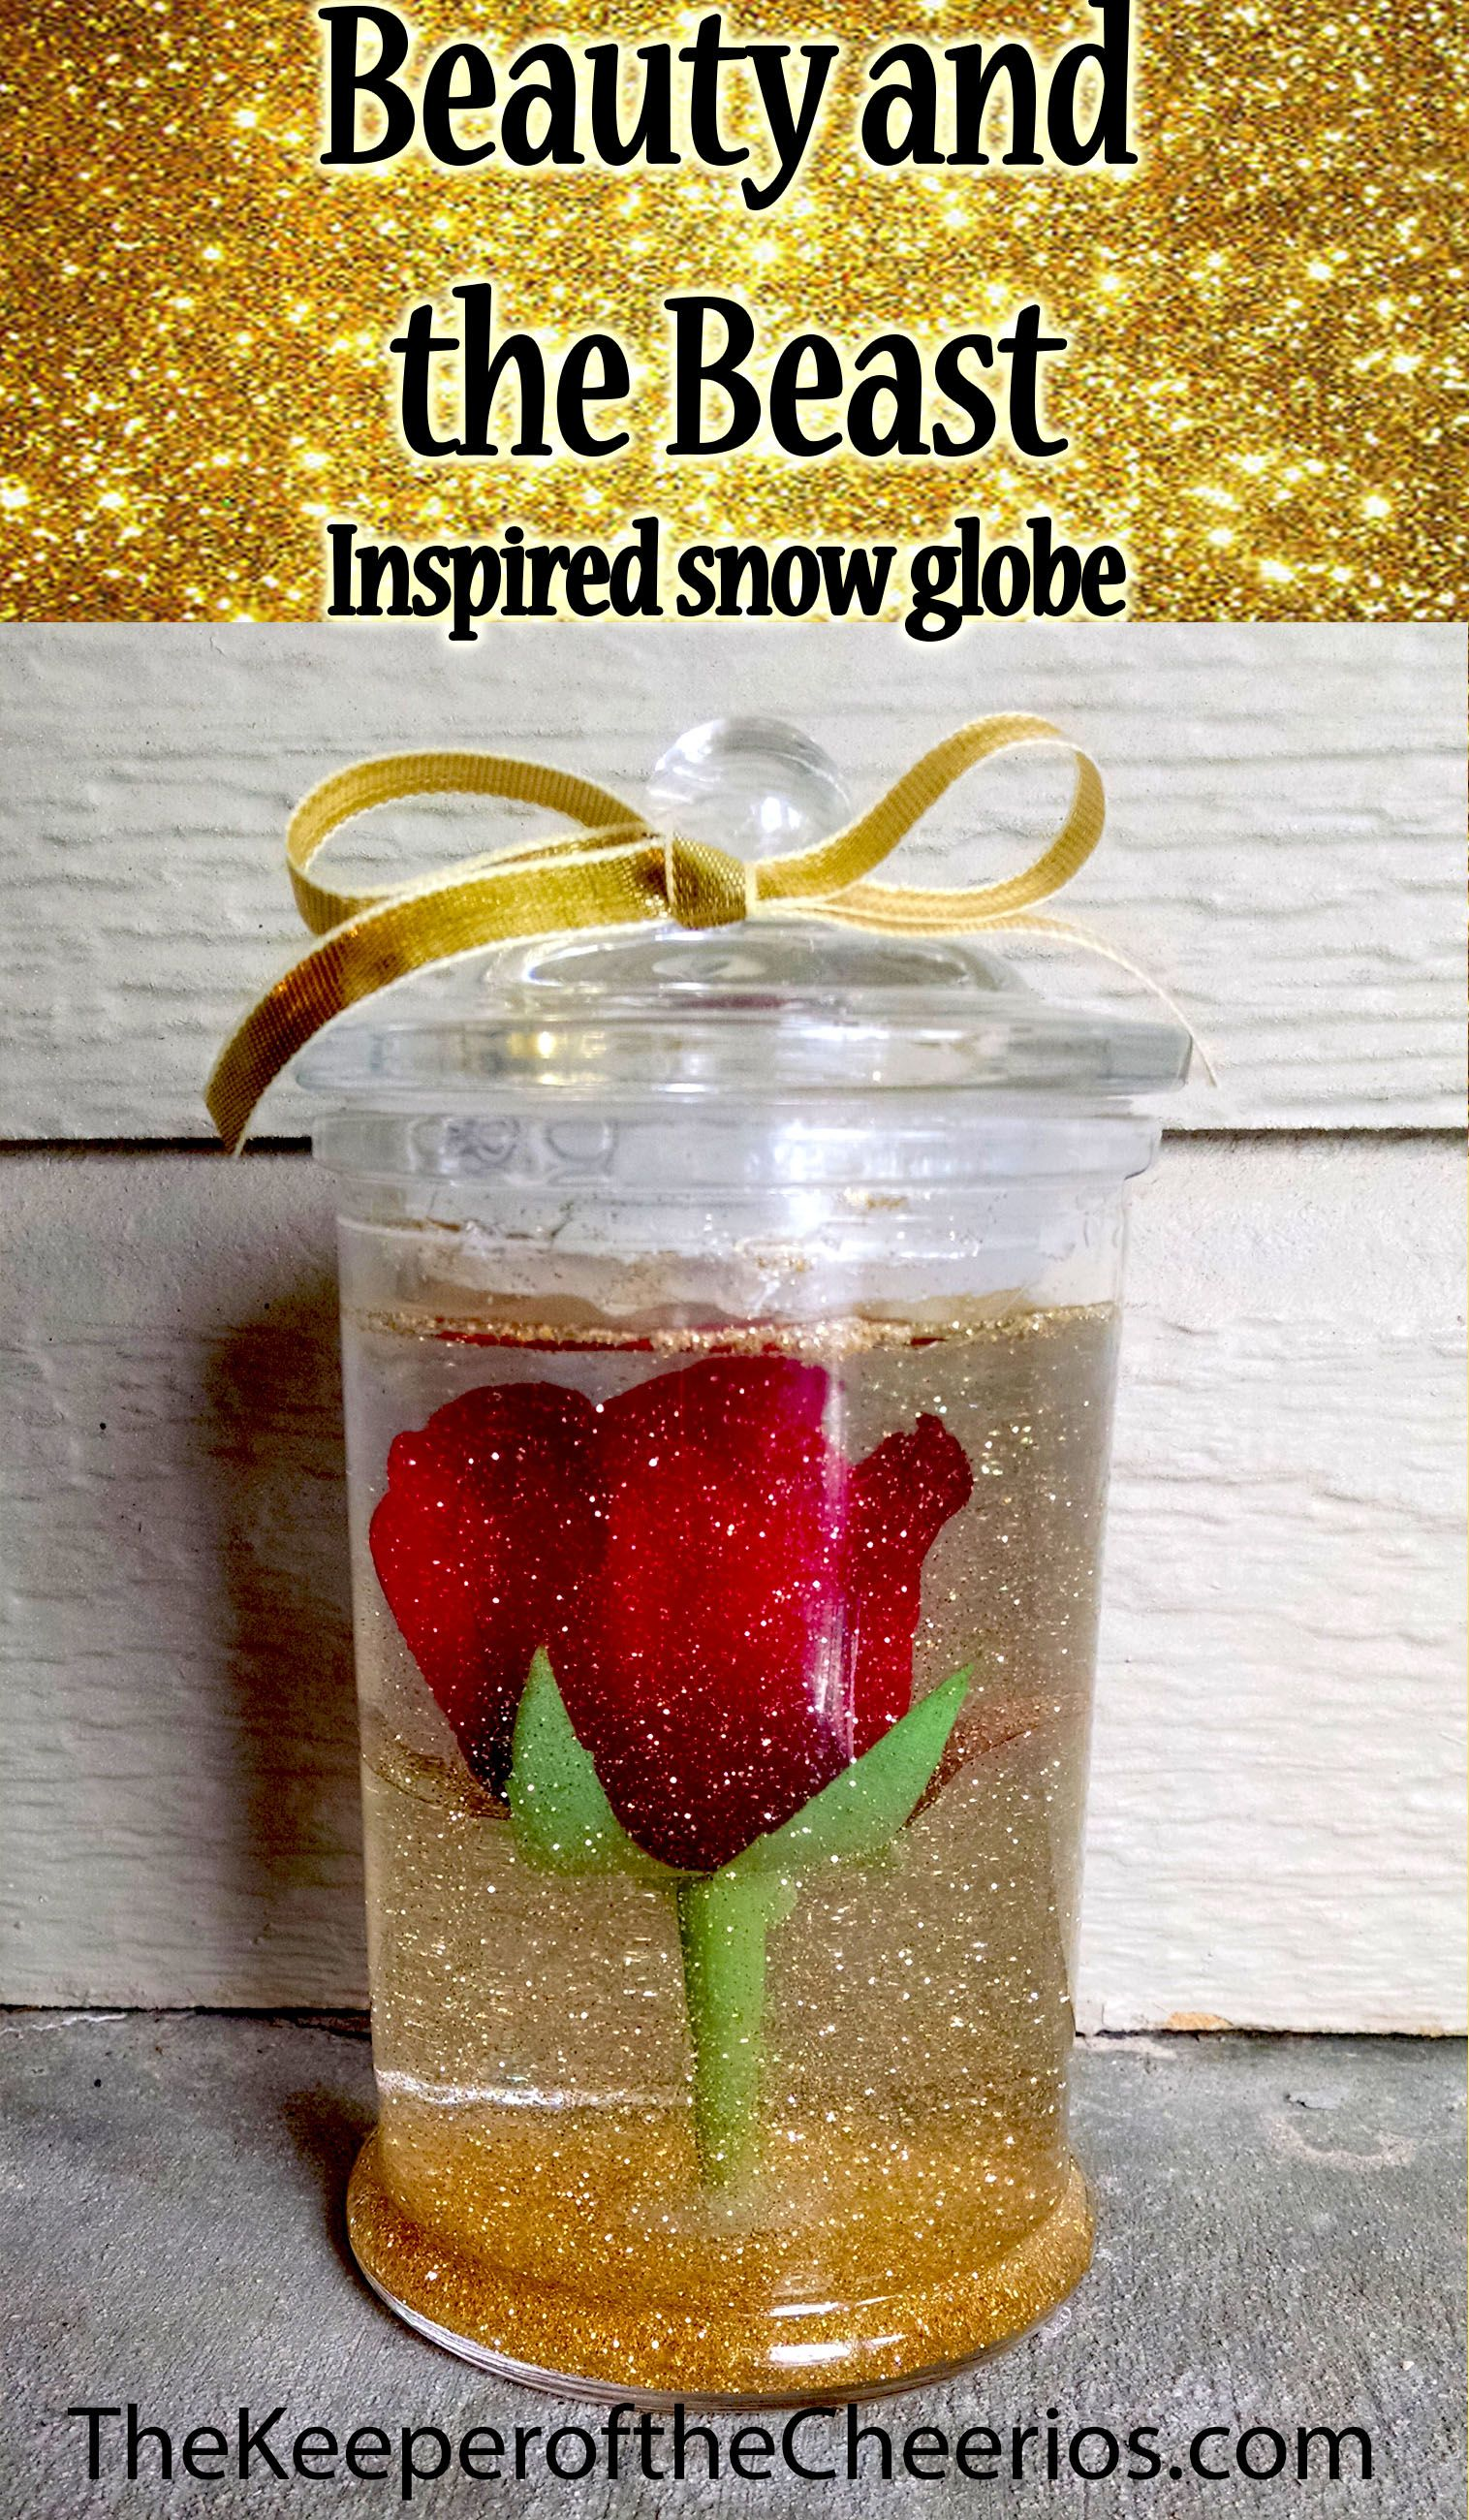 Beauty and the Beast Inspired Snow globe | Crafts DIY | Pinterest